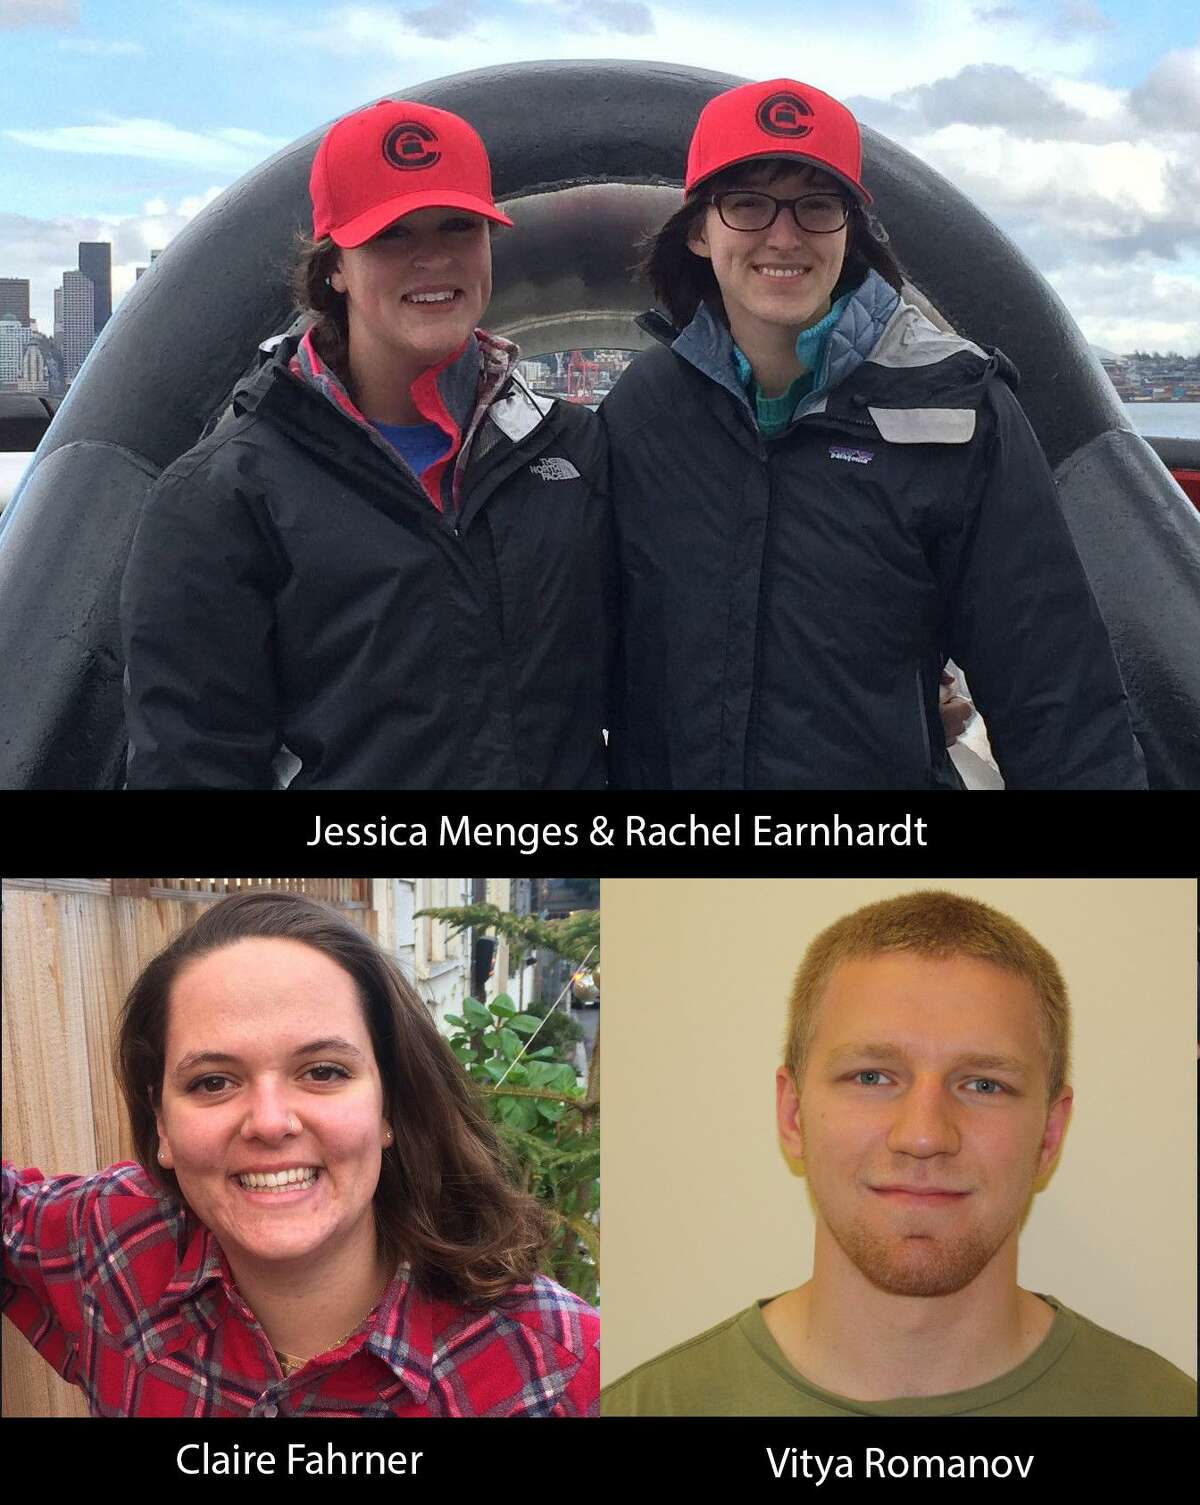 Four Williams-Mystic Maritime Studies Program students have been awarded scholarships by Crowley Maritime Corporation. Claire Fahrner, Vitya Romanov, Rachel Earnhardt and Jessica Menges were each chosen as a result of their academic excellence, morale and community involvement.